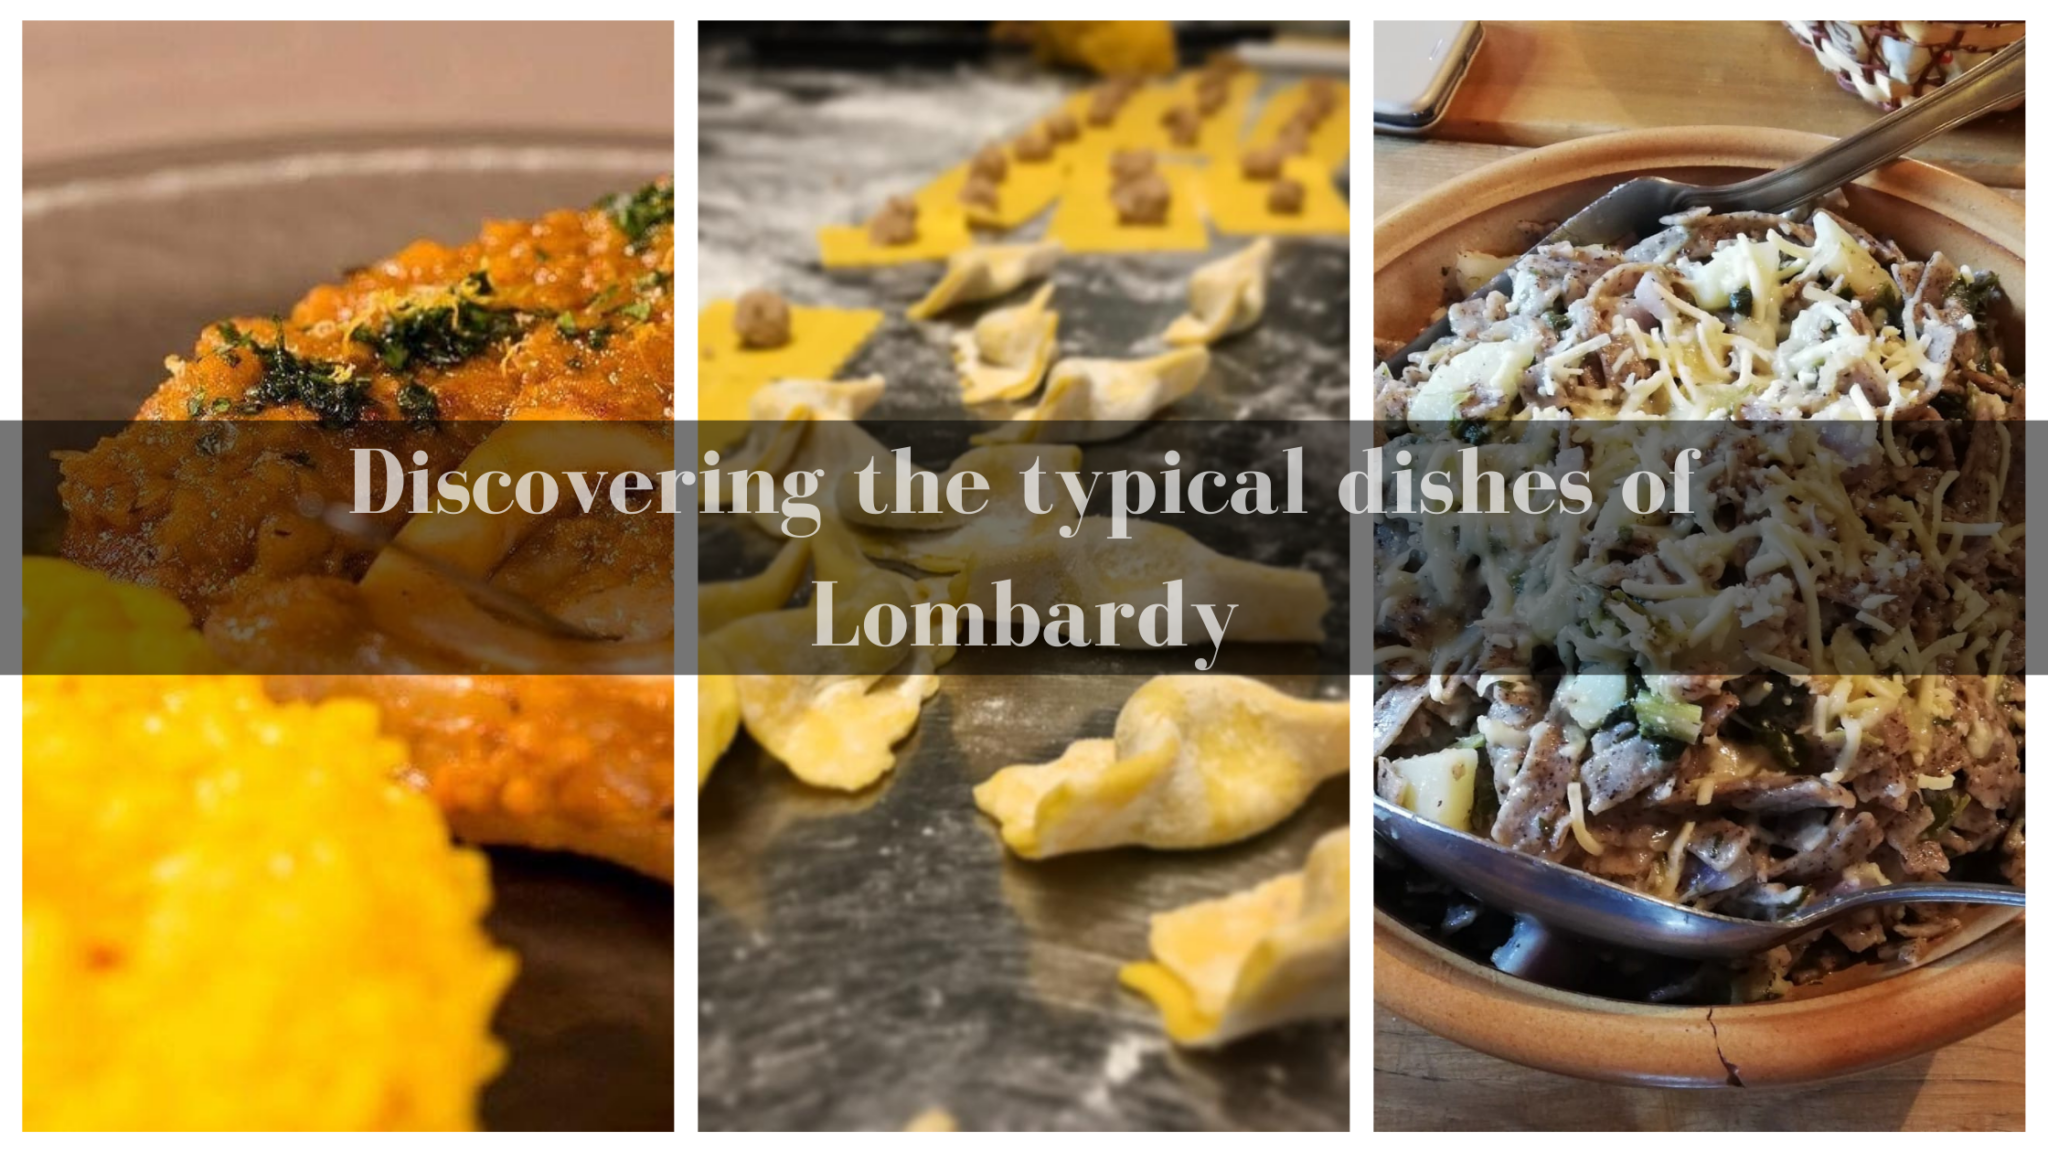 Discover the typical dishes of Lombardy